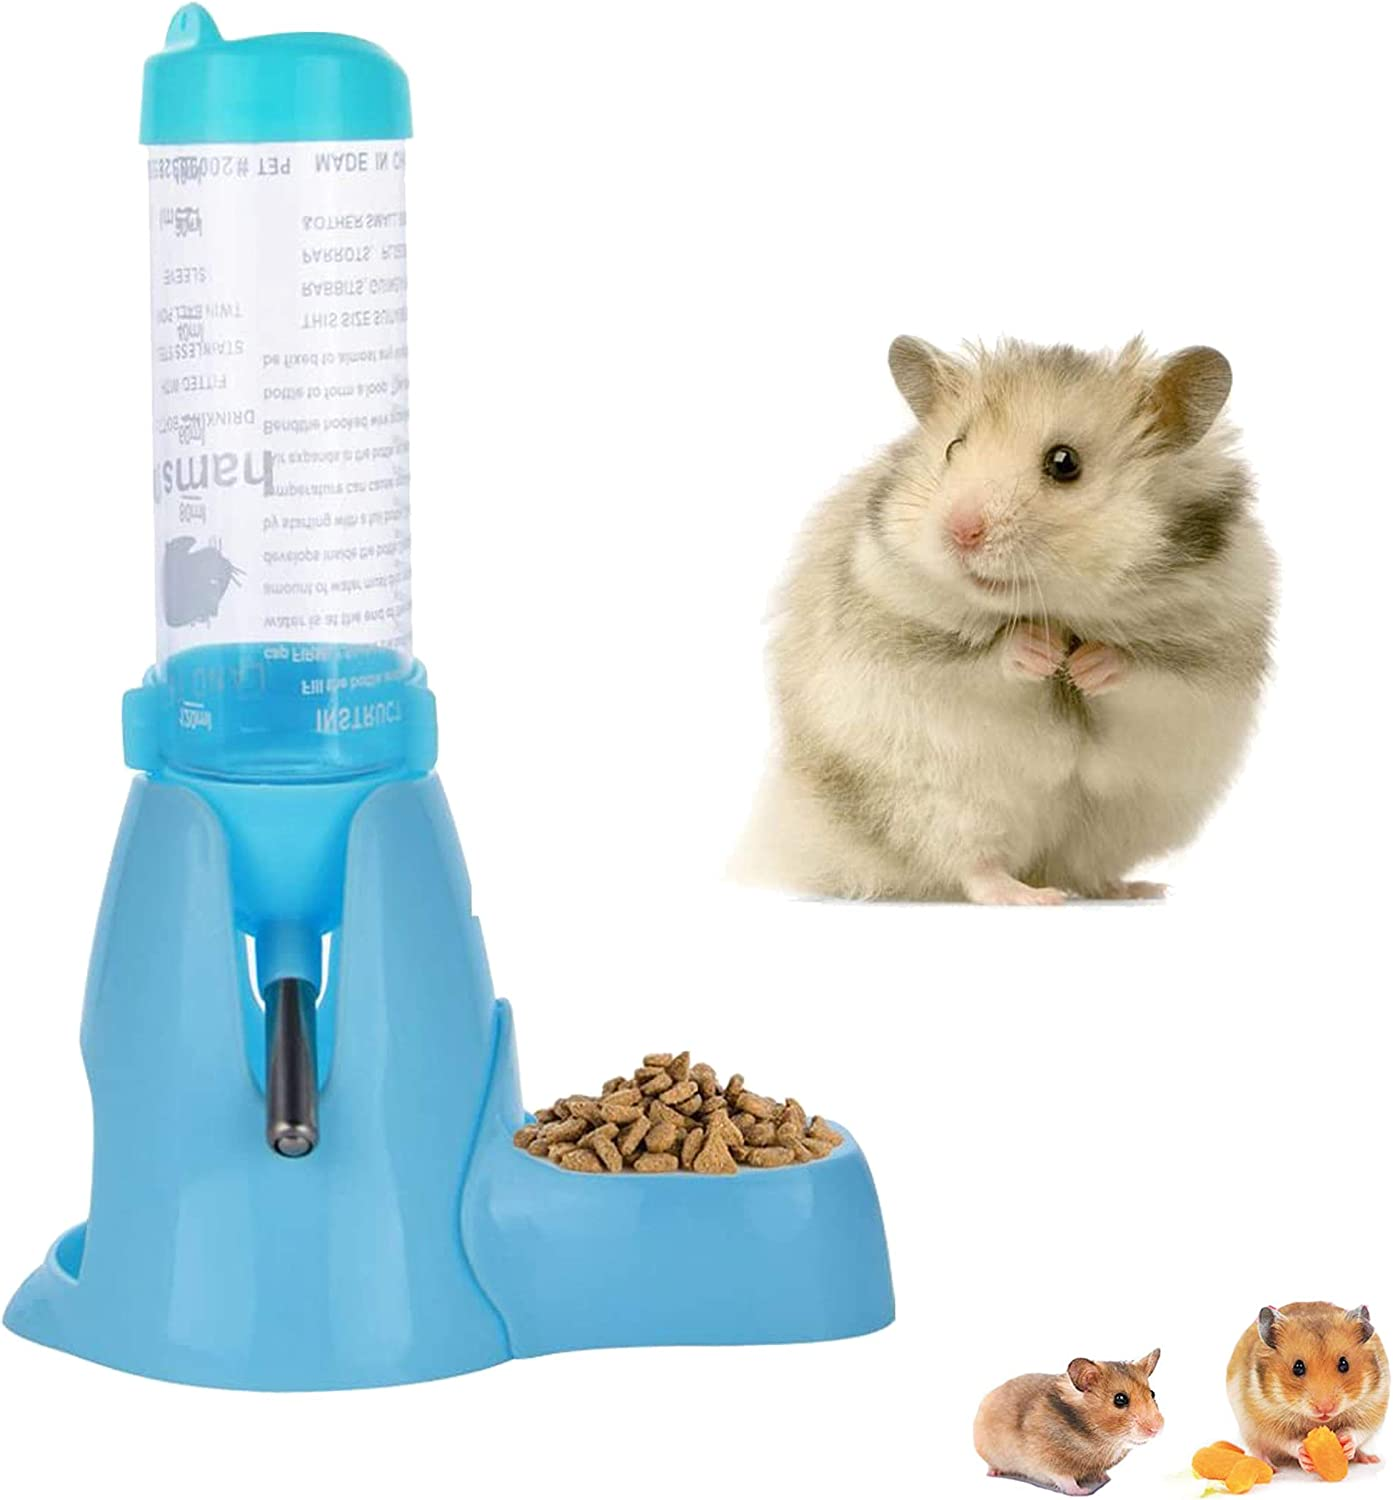 Dynaseal Hamster Hanging Water Bottle Hamster Water Bottle,Little Pet Automatic Drinking Bottle with Food Container Base Hut Hanging Water Feeding Bottles Auto Dispenser for Small Animals